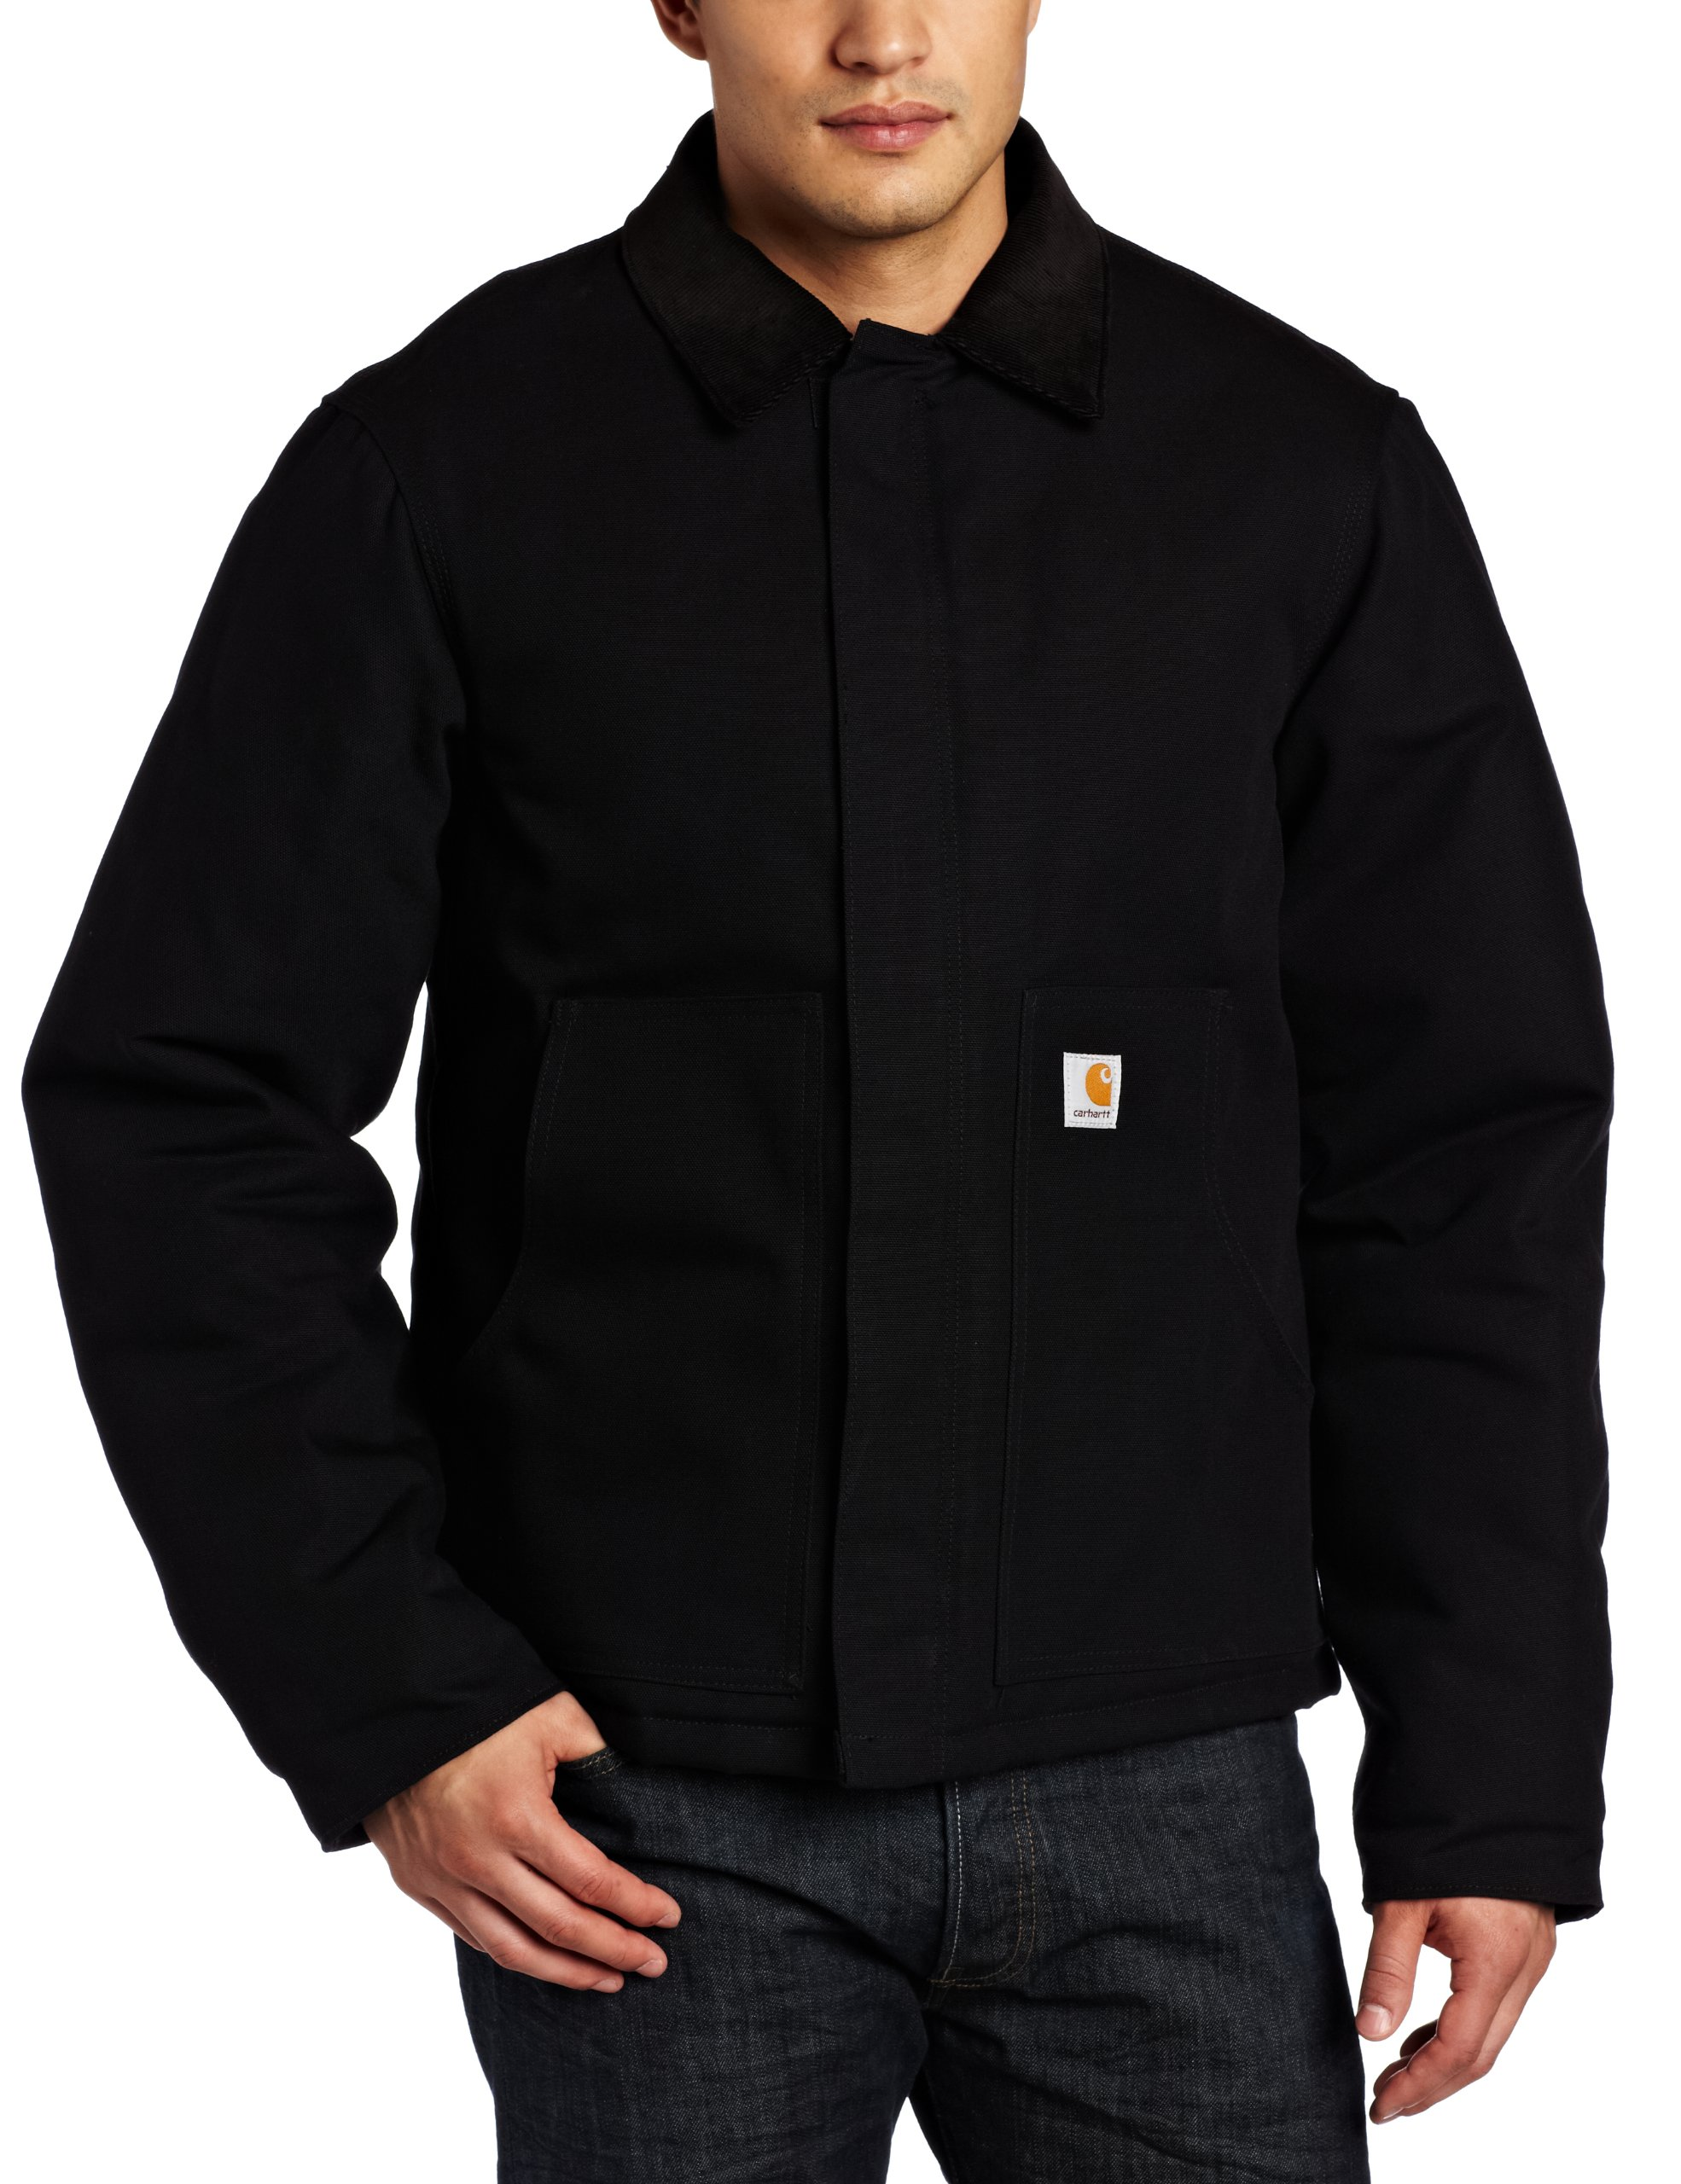 Carhartt Men's Arctic Quilt Lined Duck Traditional Jacket,Black,XX-Large